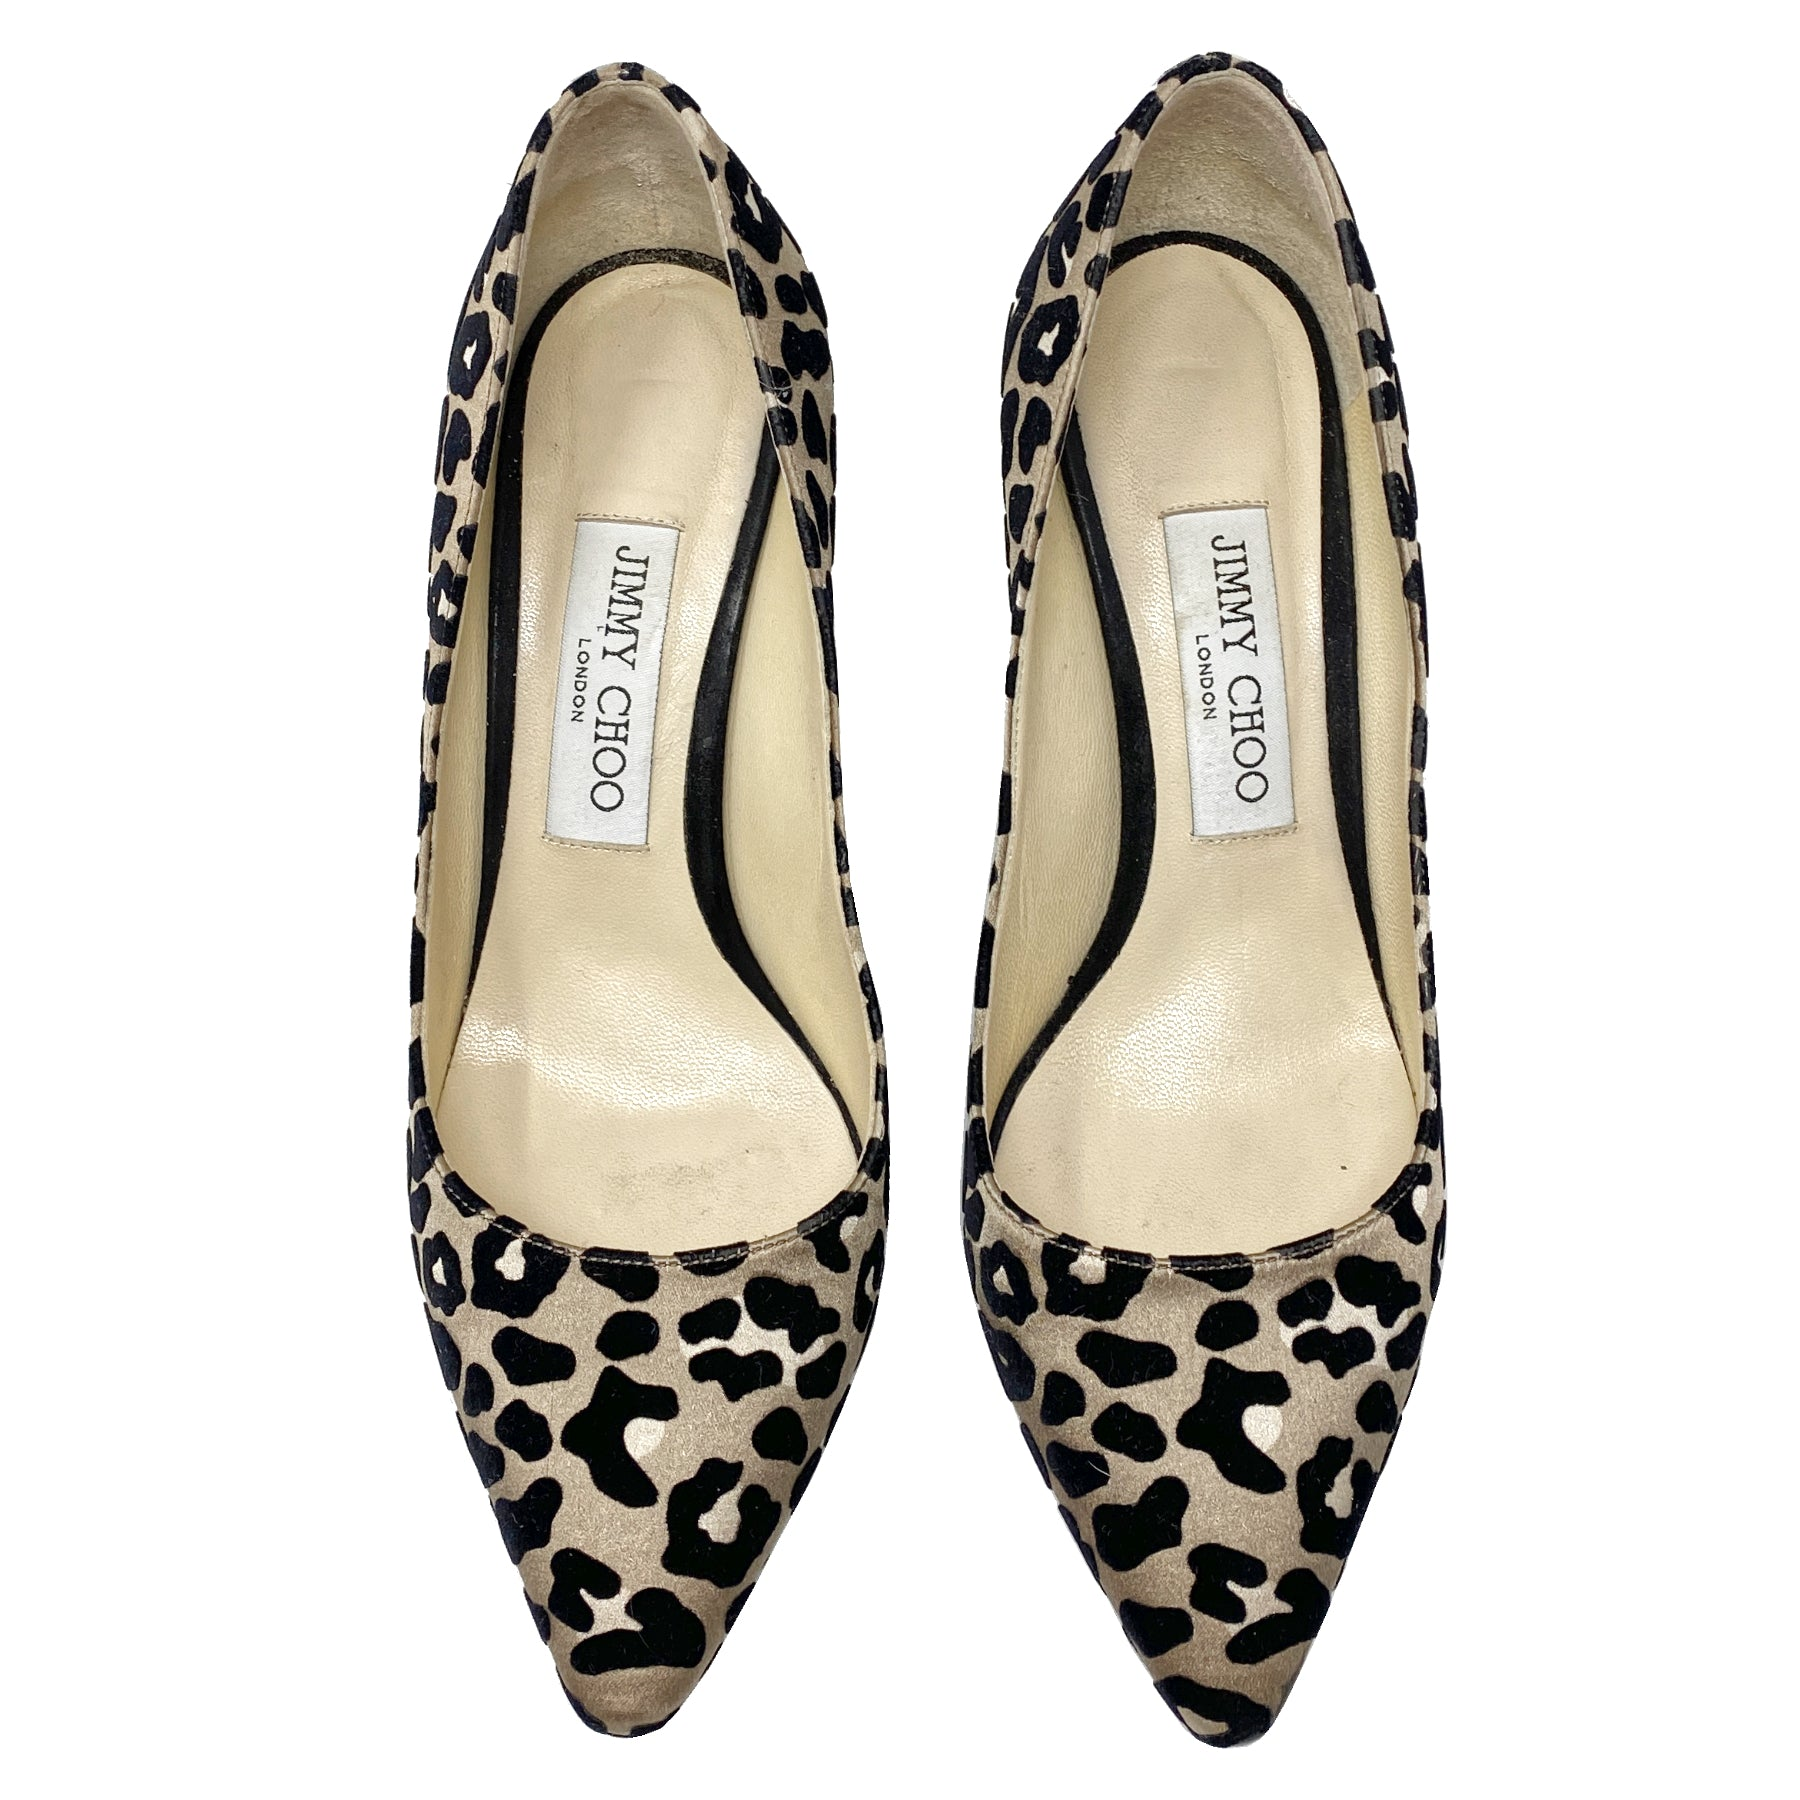 Jimmy Choo Romy 85mm Leopard Pumps Size 37